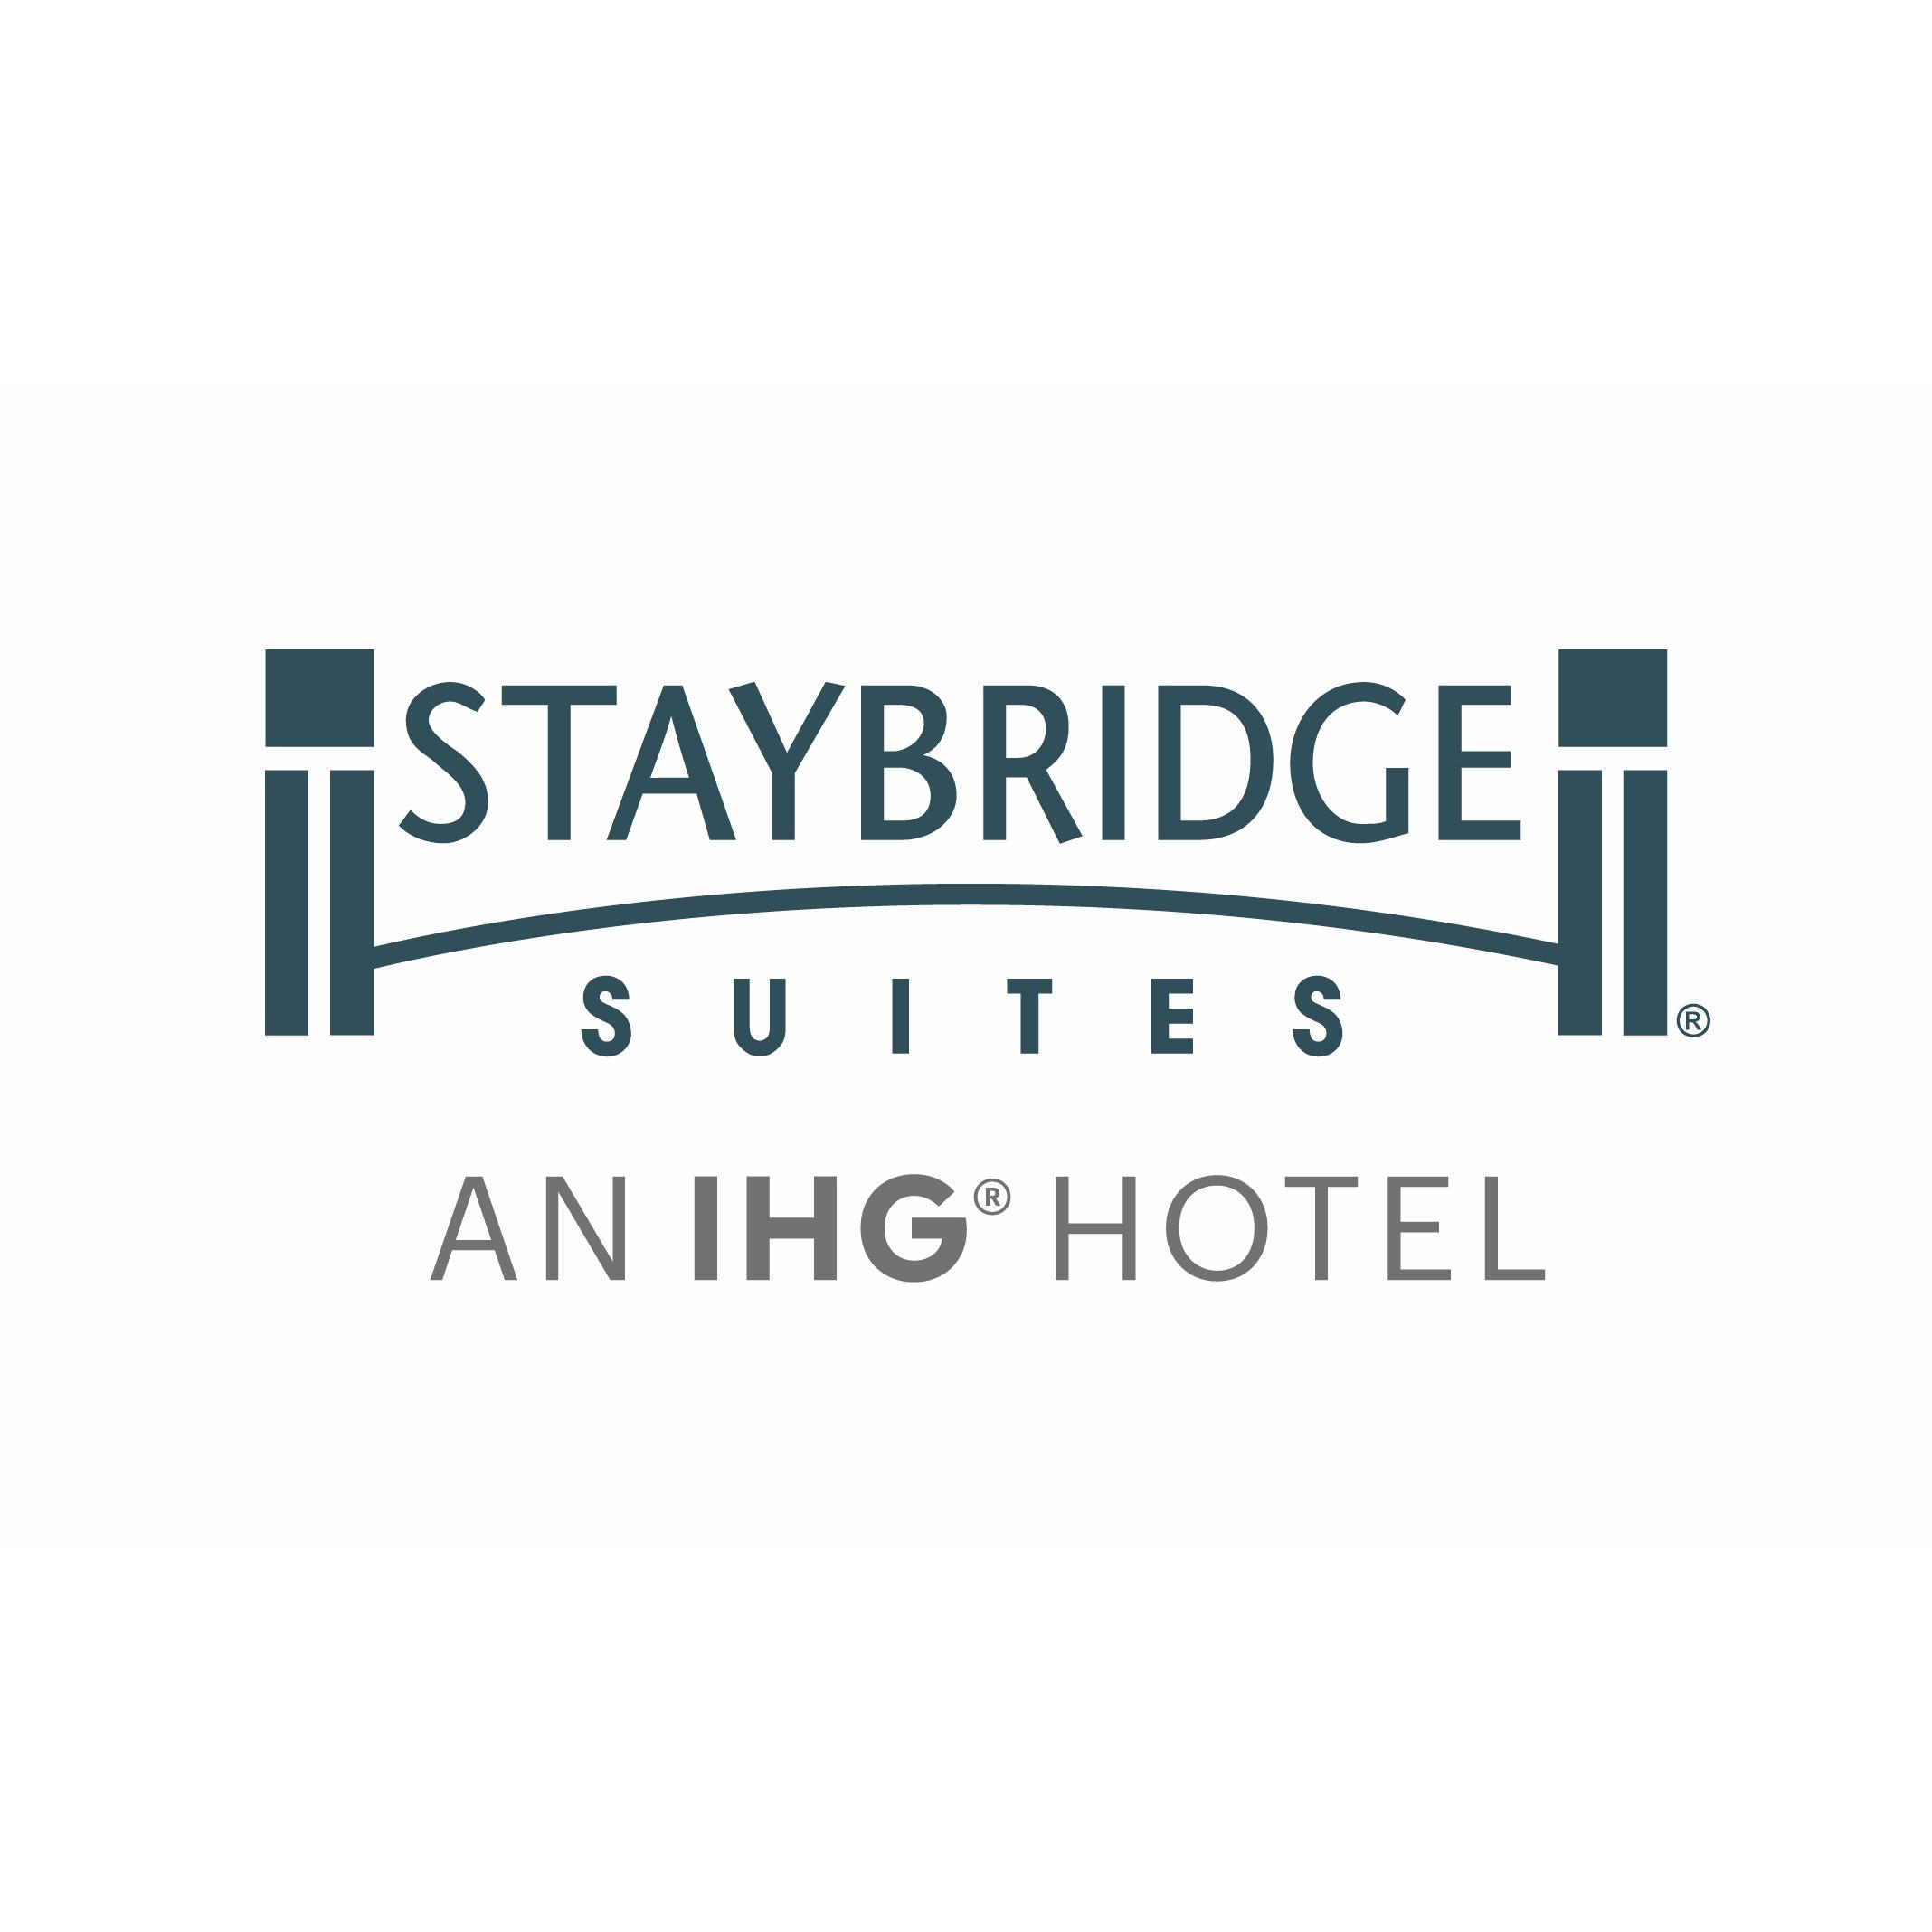 Staybridge Suites Cincinnati North Oh